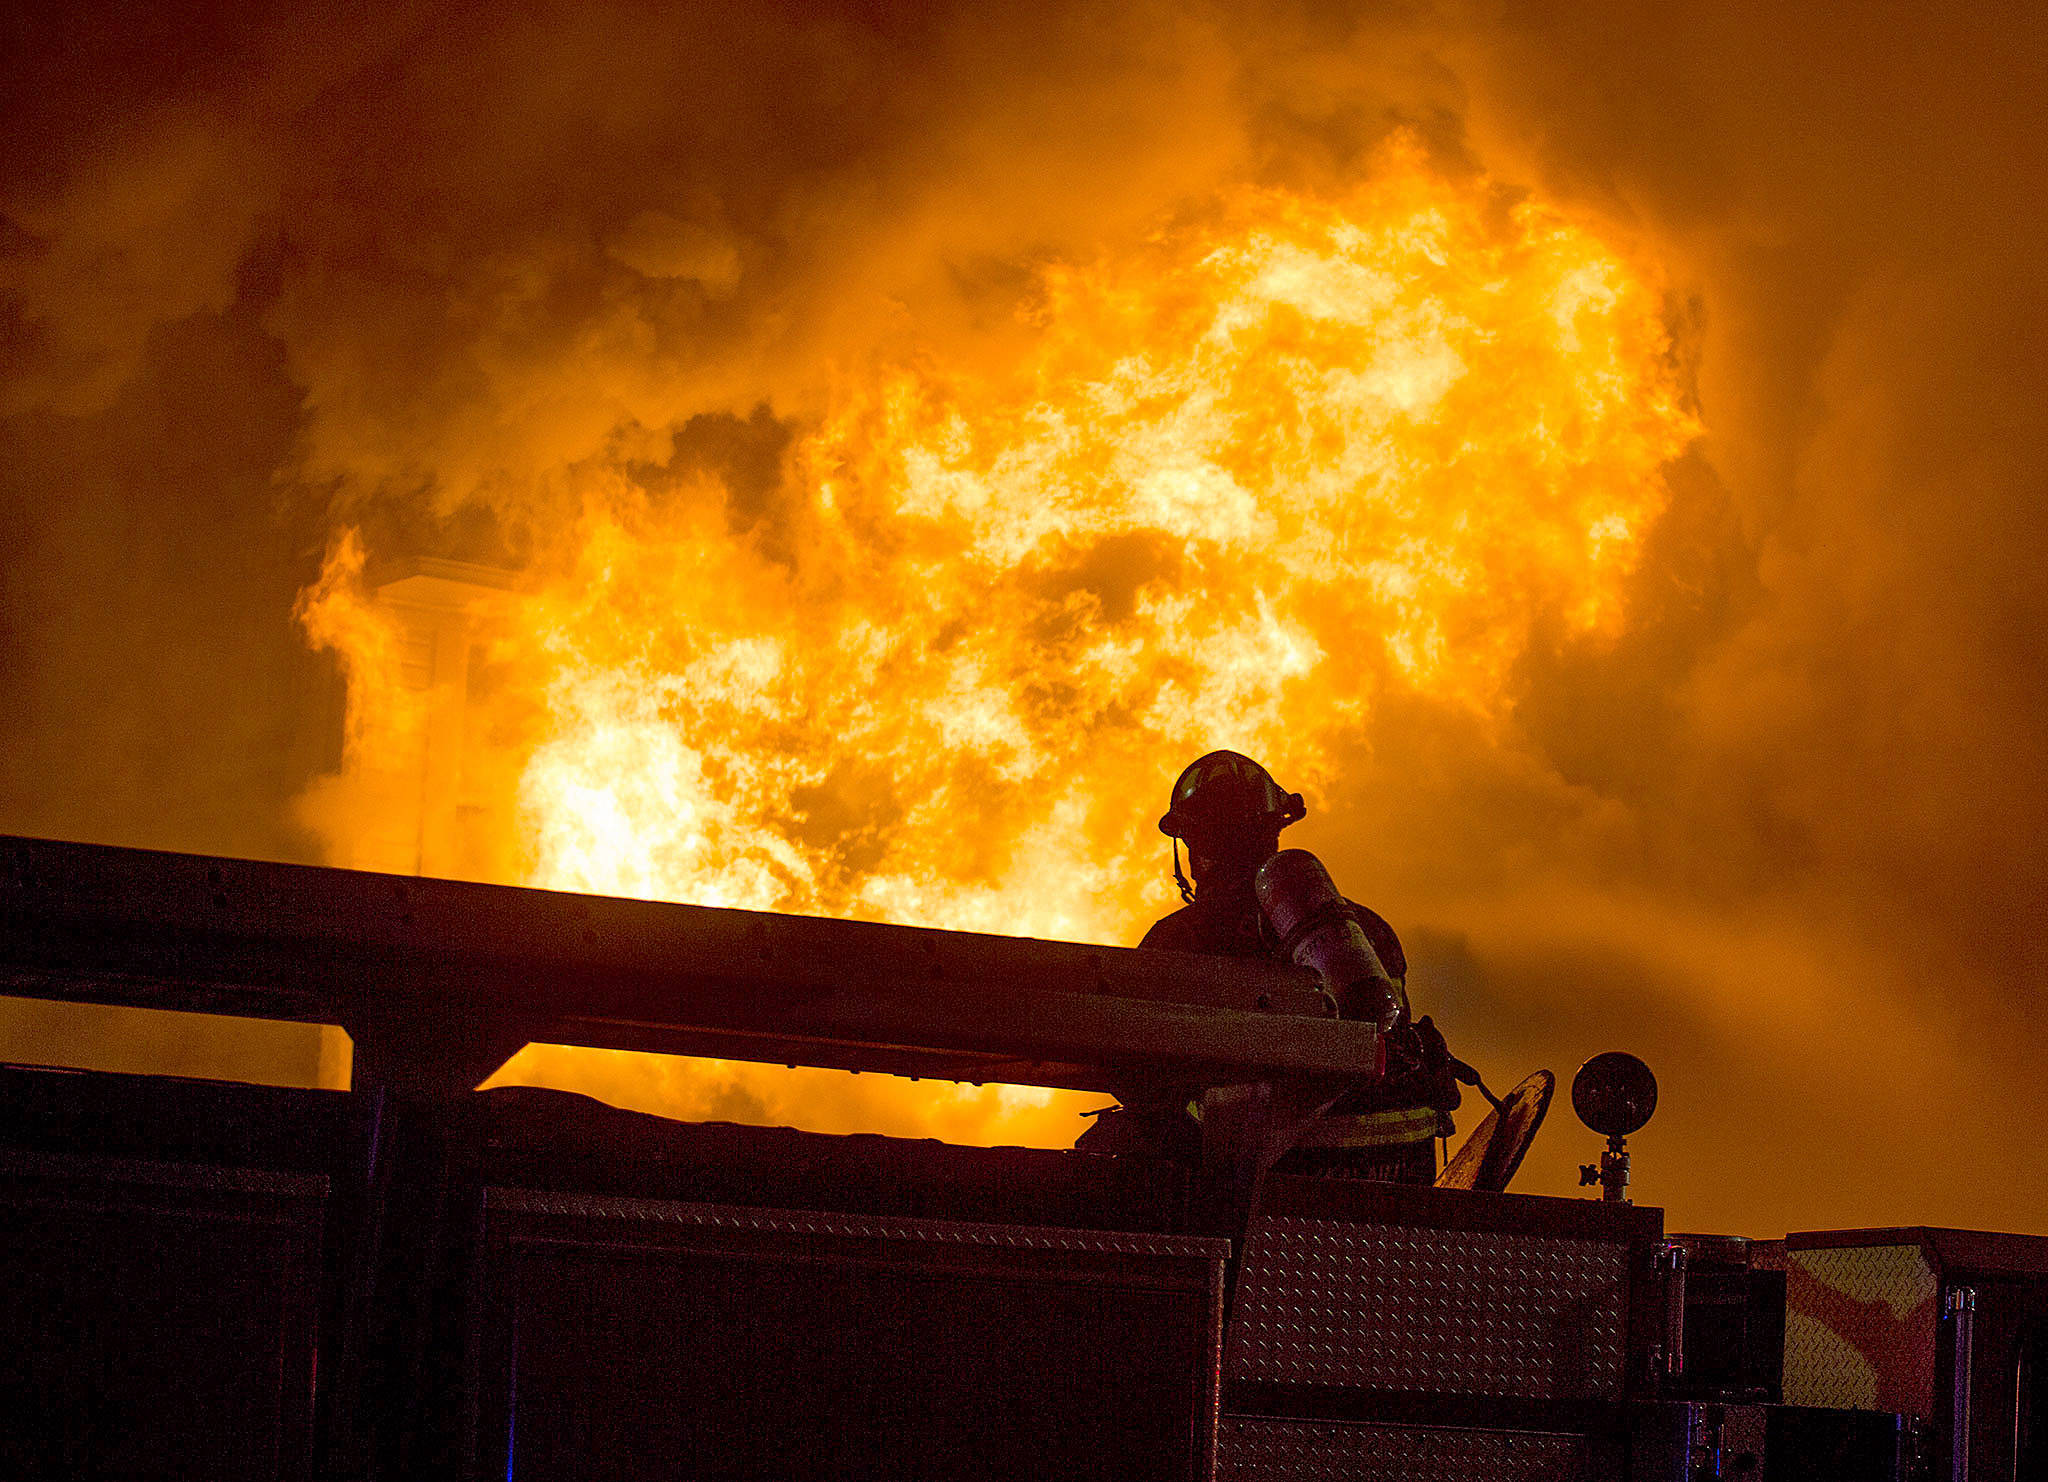 Flames burst out from the front face of Everett Office Furniture on Broadway on Sept. 25 in Everett. The fire caused damage estimated at $1.5 million. (Andy Bronson / The Herald)